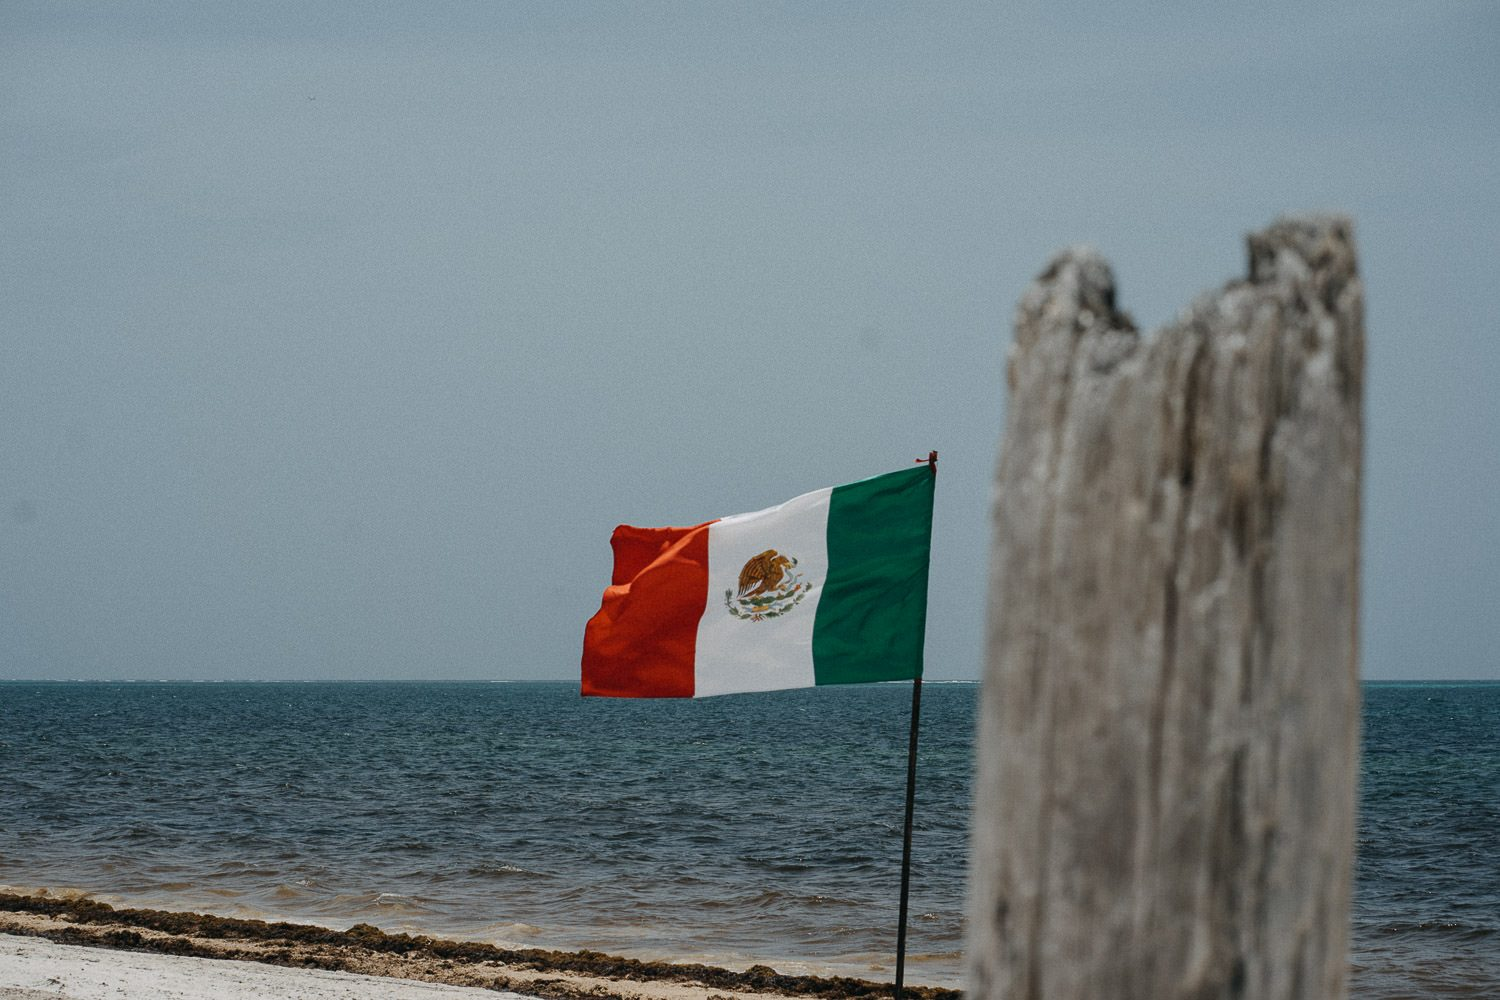 mexican flag blowing in wind on cancun beach